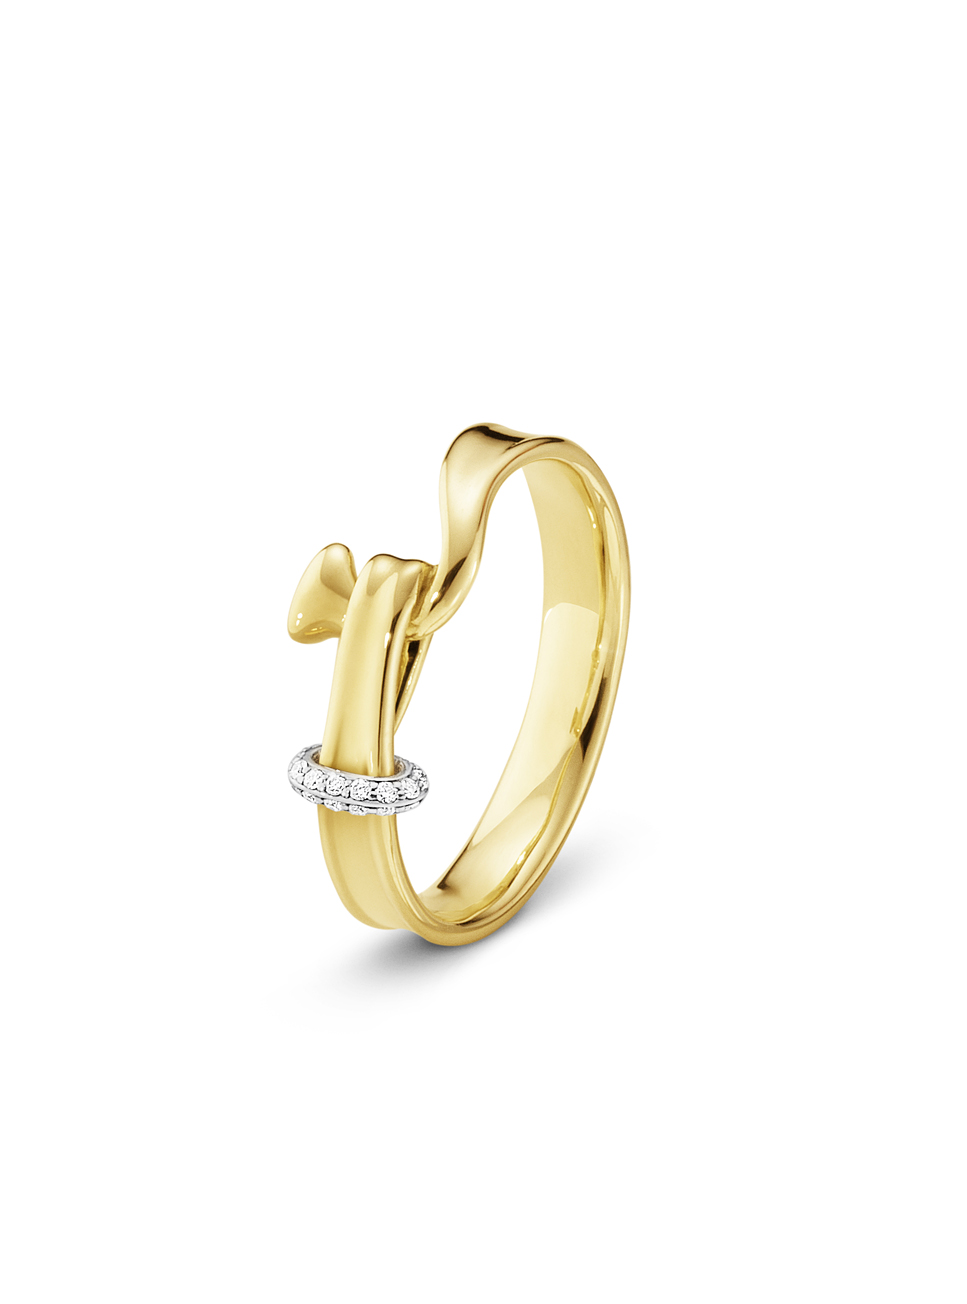 Georg Jensen TORUN ring - 3573480